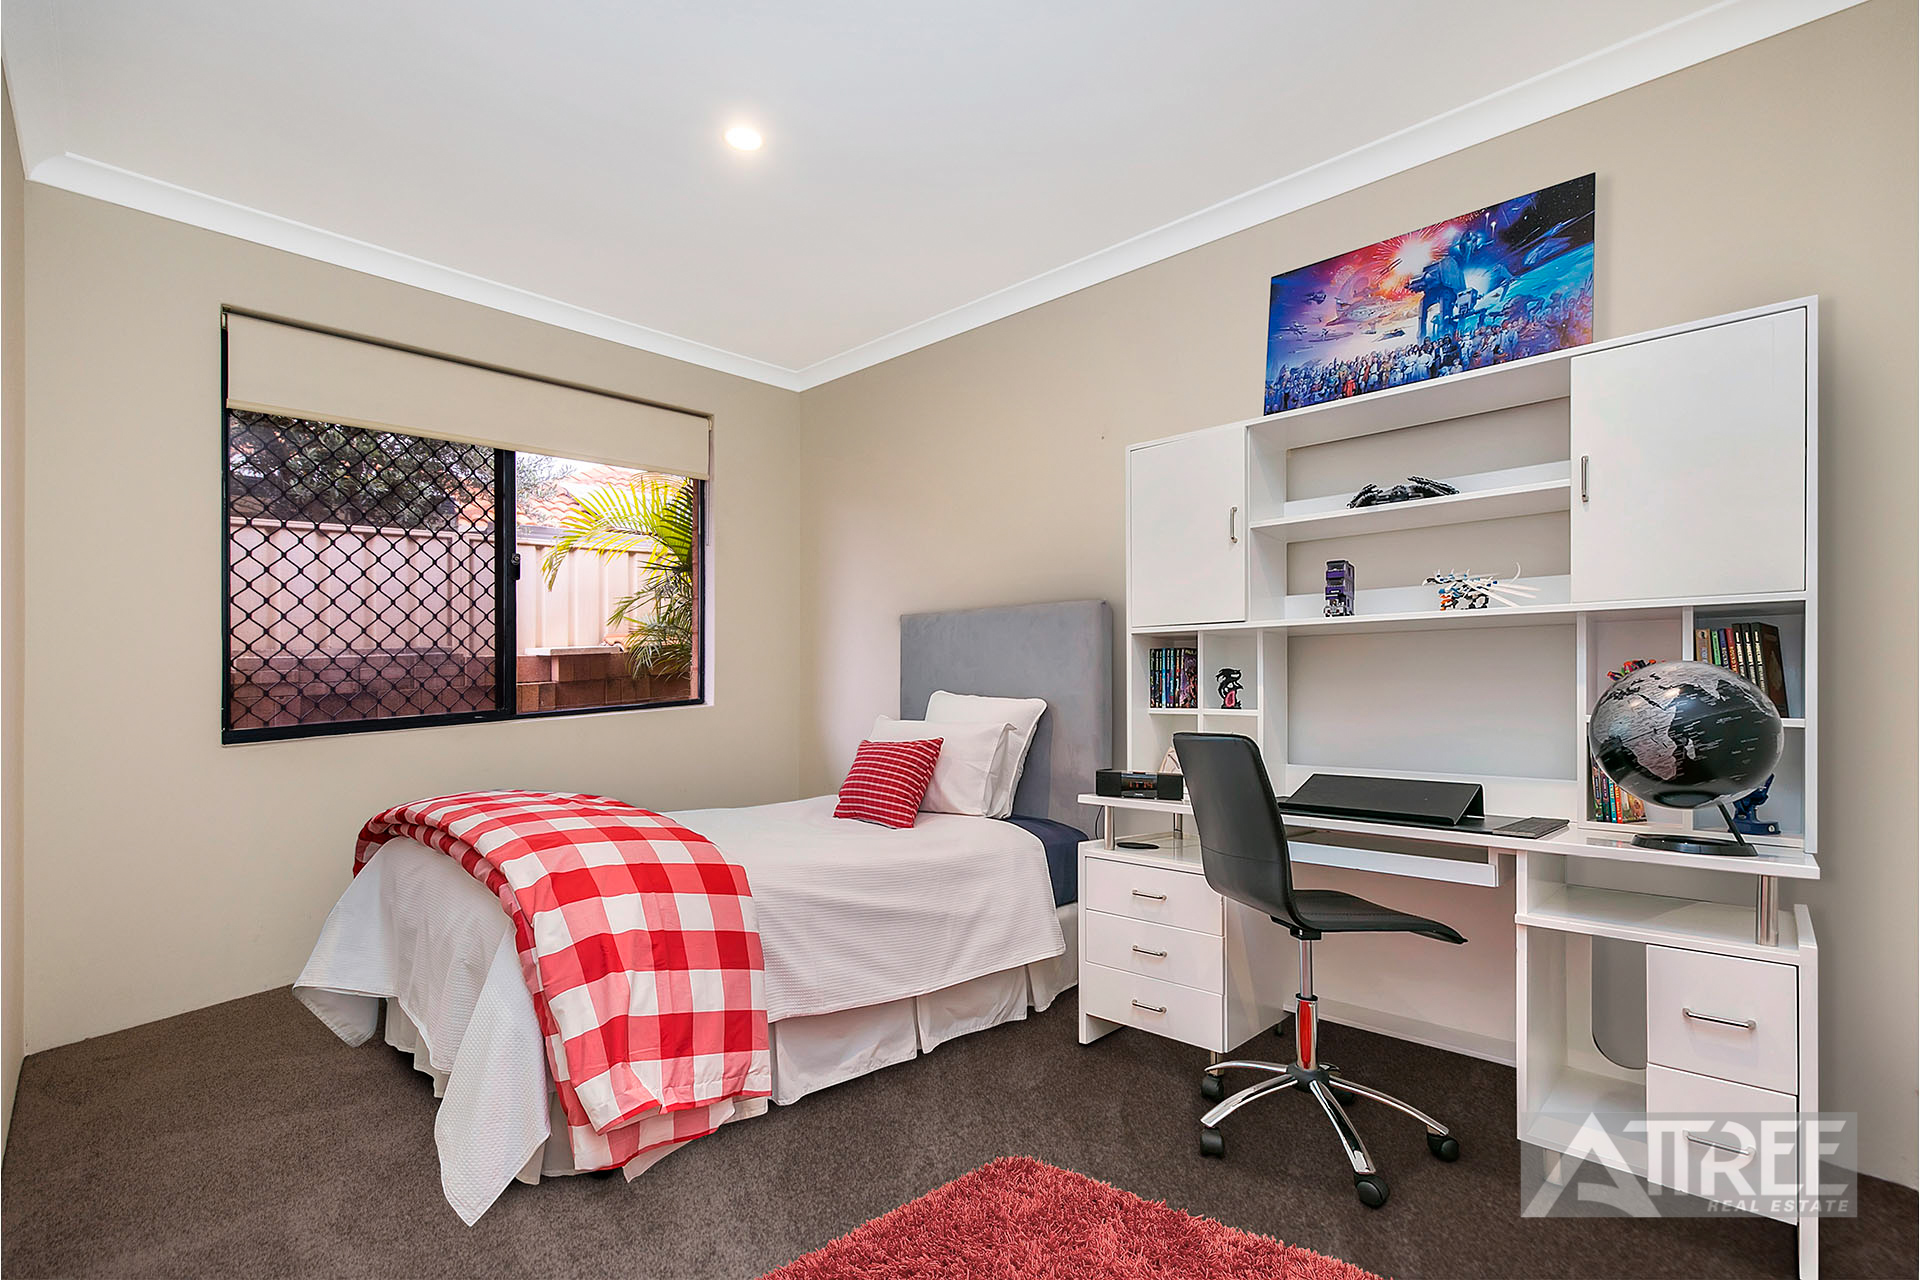 Property for sale in CANNING VALE, 12 Yindana Entrance : Attree Real Estate